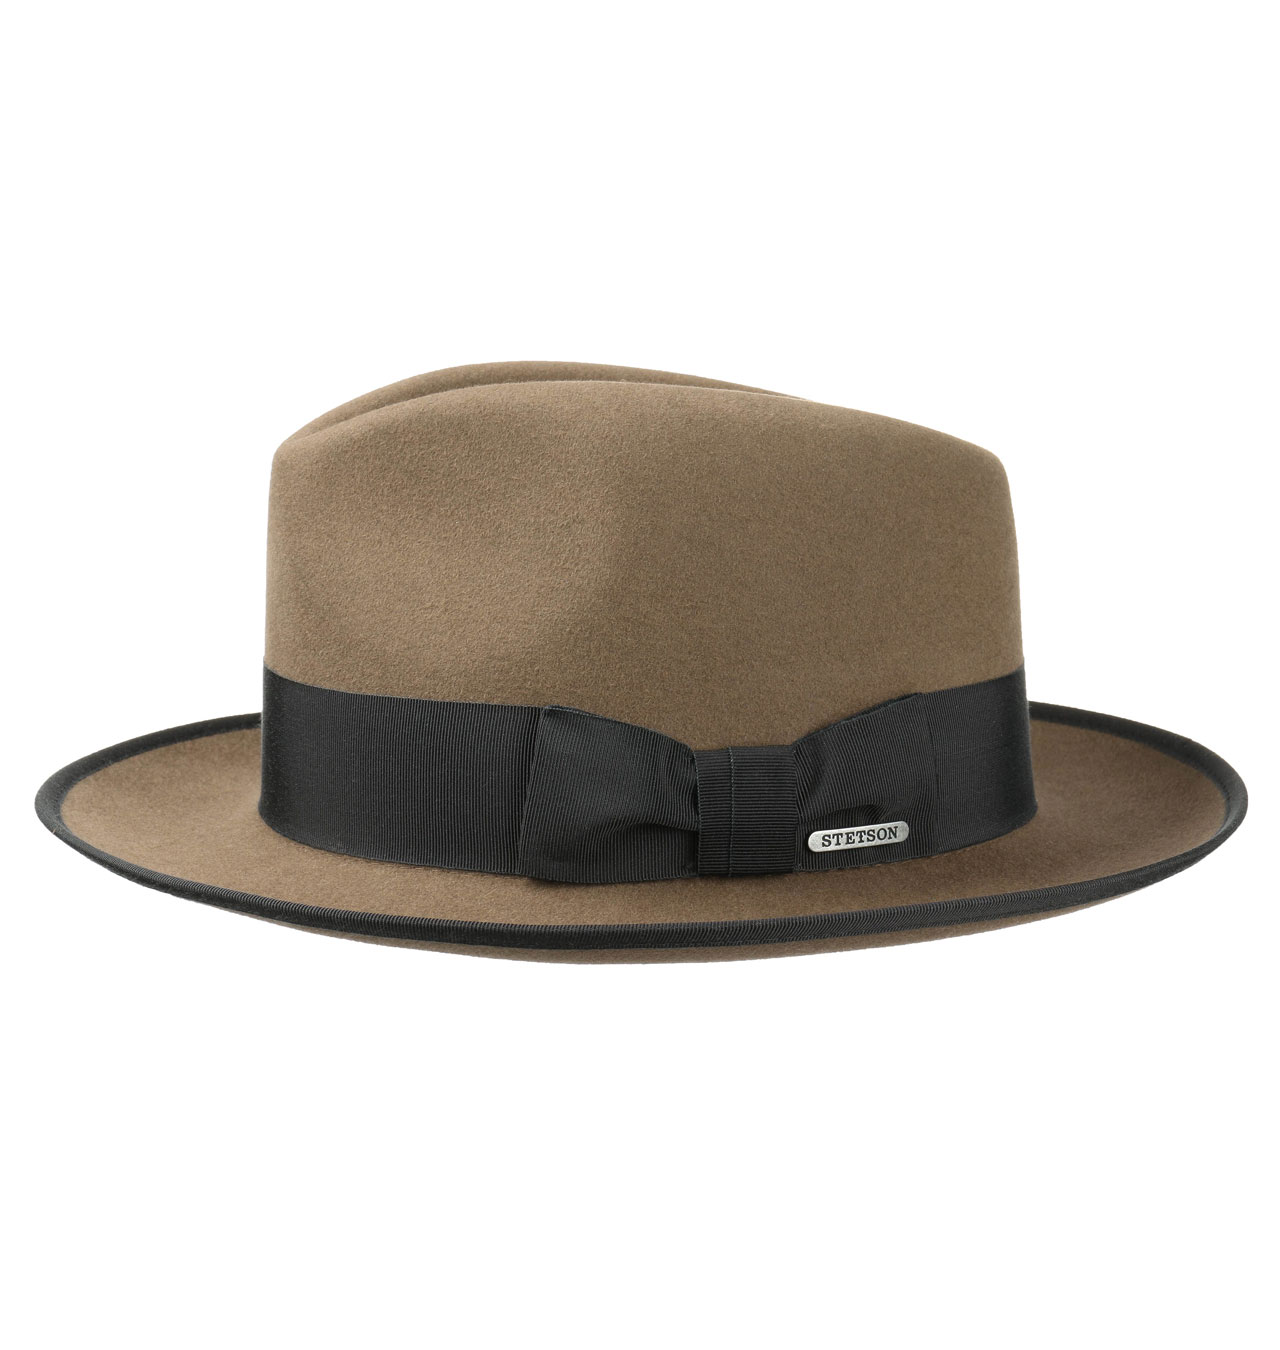 Stetson Fedora Furfelt Brown / black